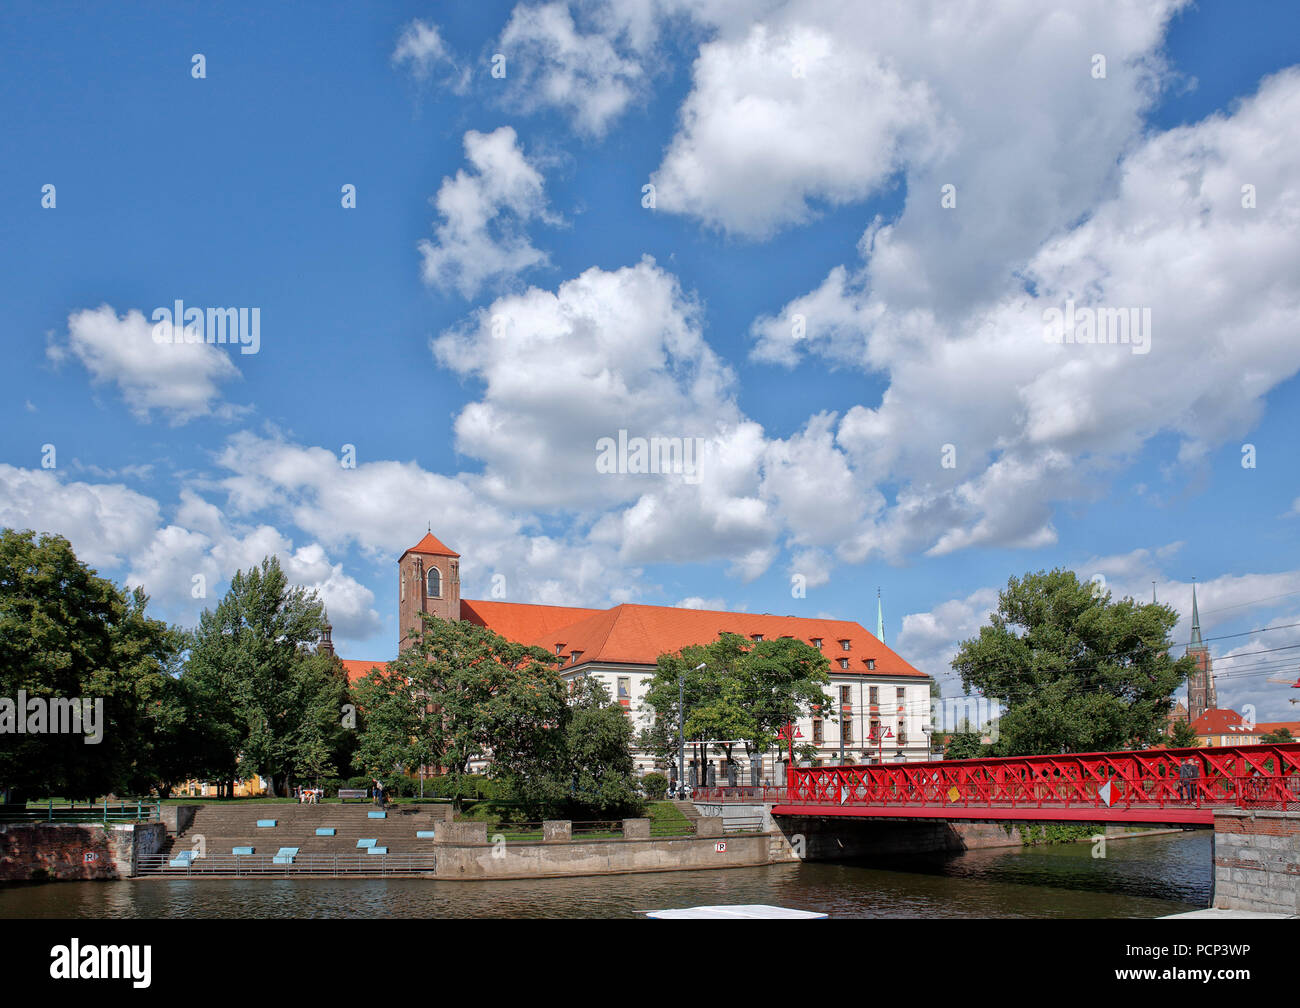 sand bridge (sandbruecke) from the old town of Wroclaw over to sand island (sandinsel). wroclaw, breslau, lower silesia, poland, europe - Stock Image